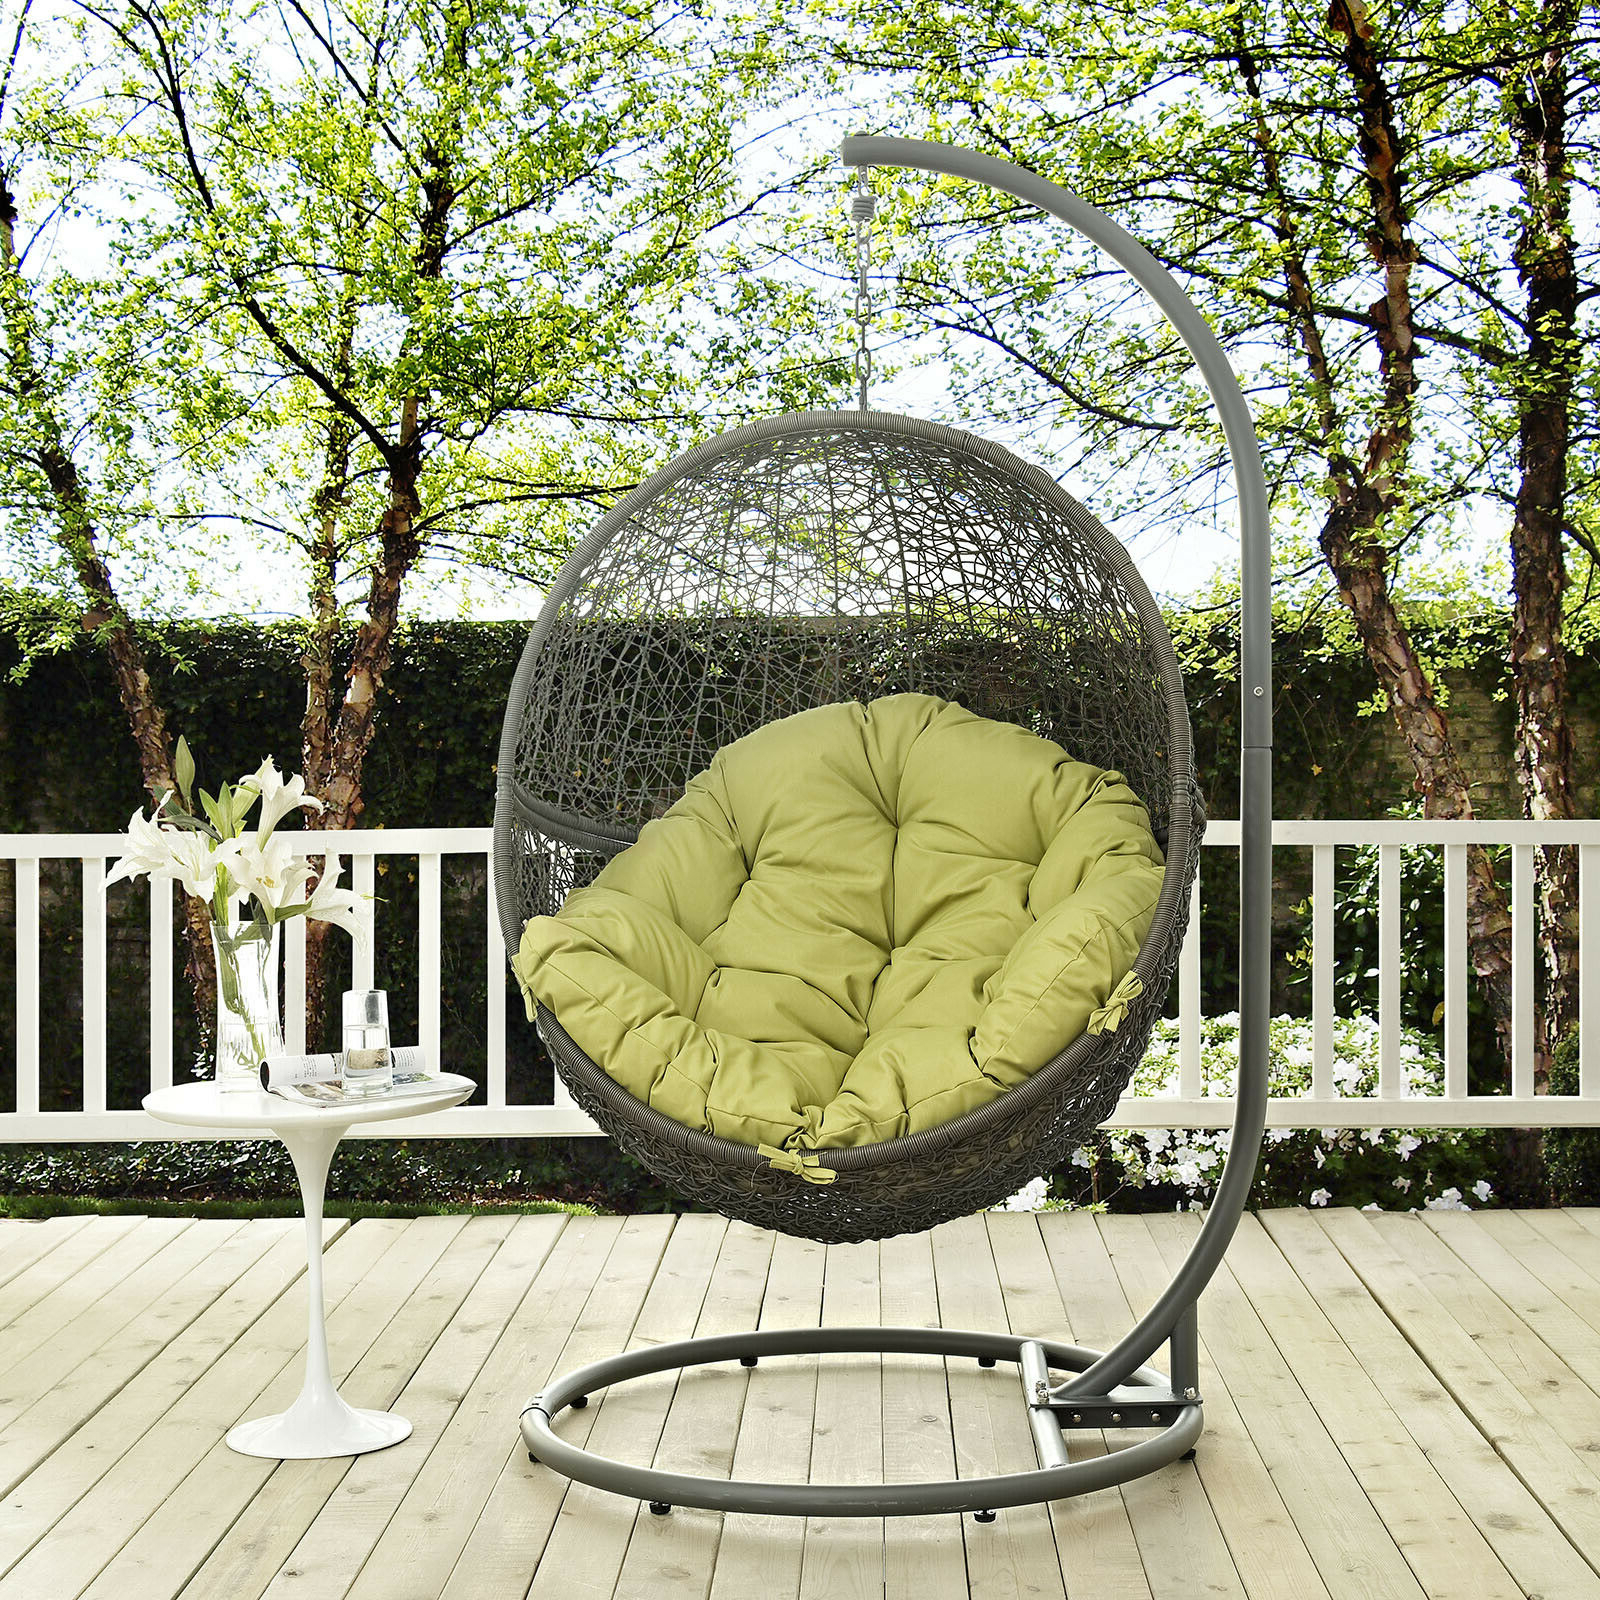 Wicker Glider Outdoor Porch Swings With Stand For Most Recent Details About Wicker Rattan Outdoor Patio Hanging Swing Porch Chair W/  Stand In Gray Peridot (View 26 of 30)